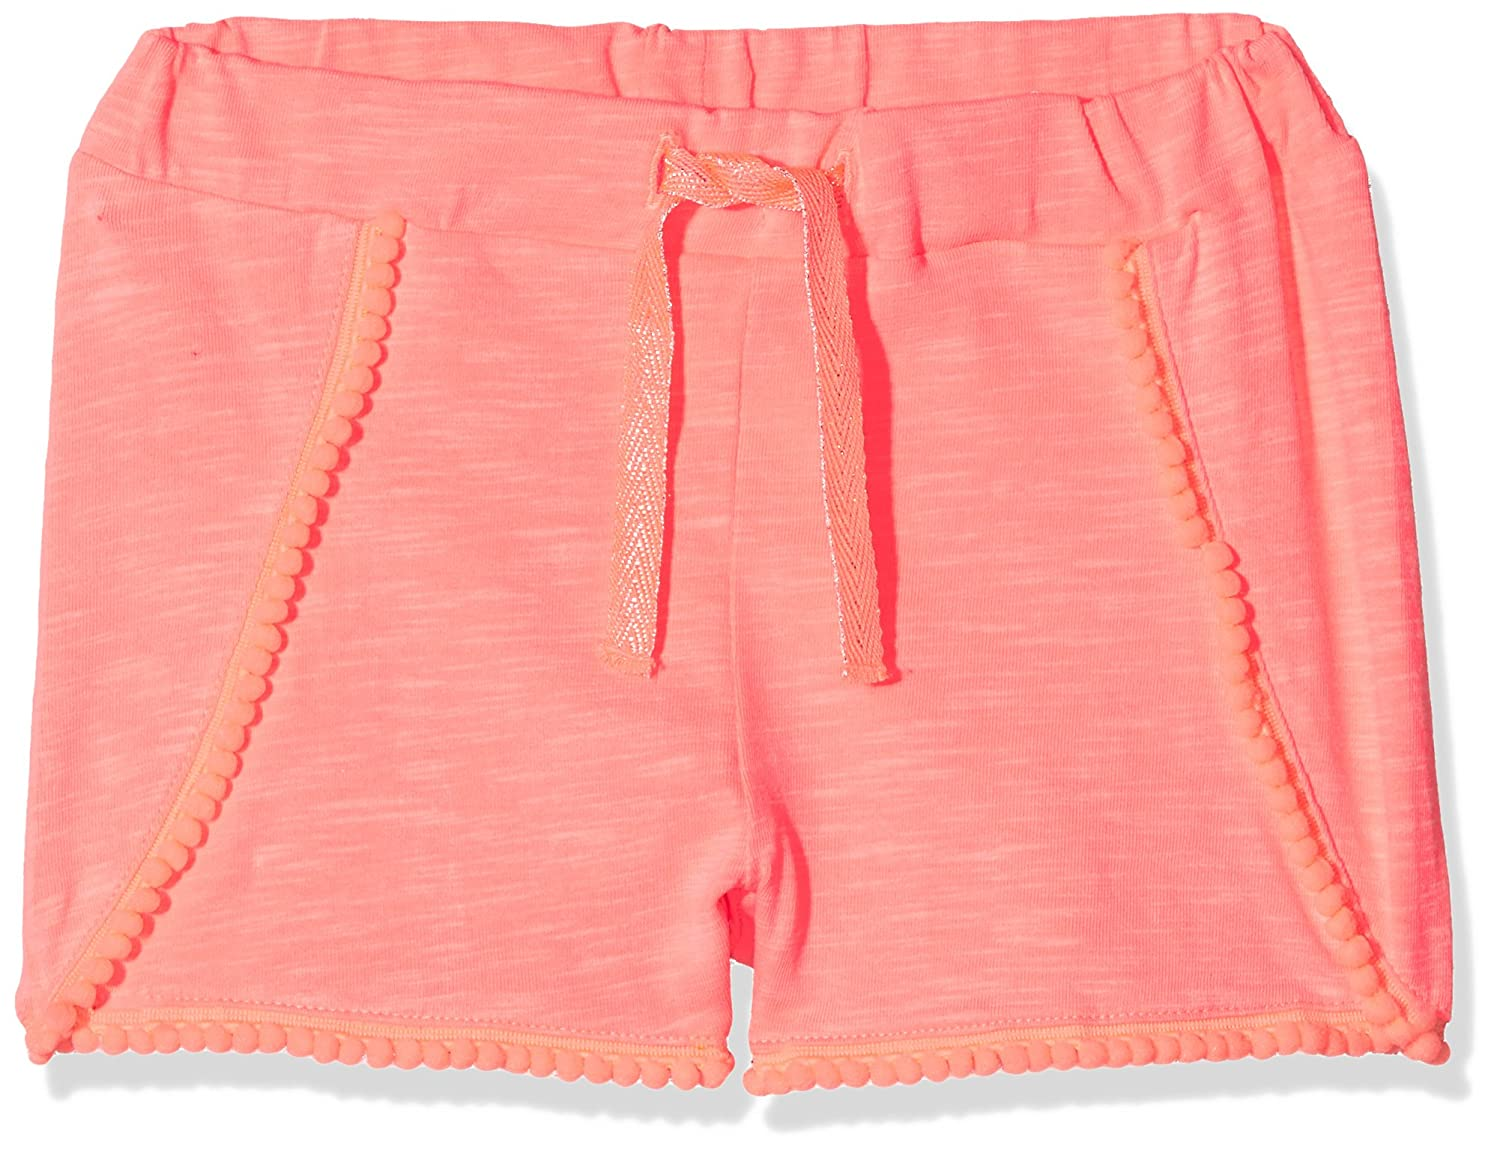 NAME IT Nmfderika Shorts, Pantalones Cortos para Bebés 13153198